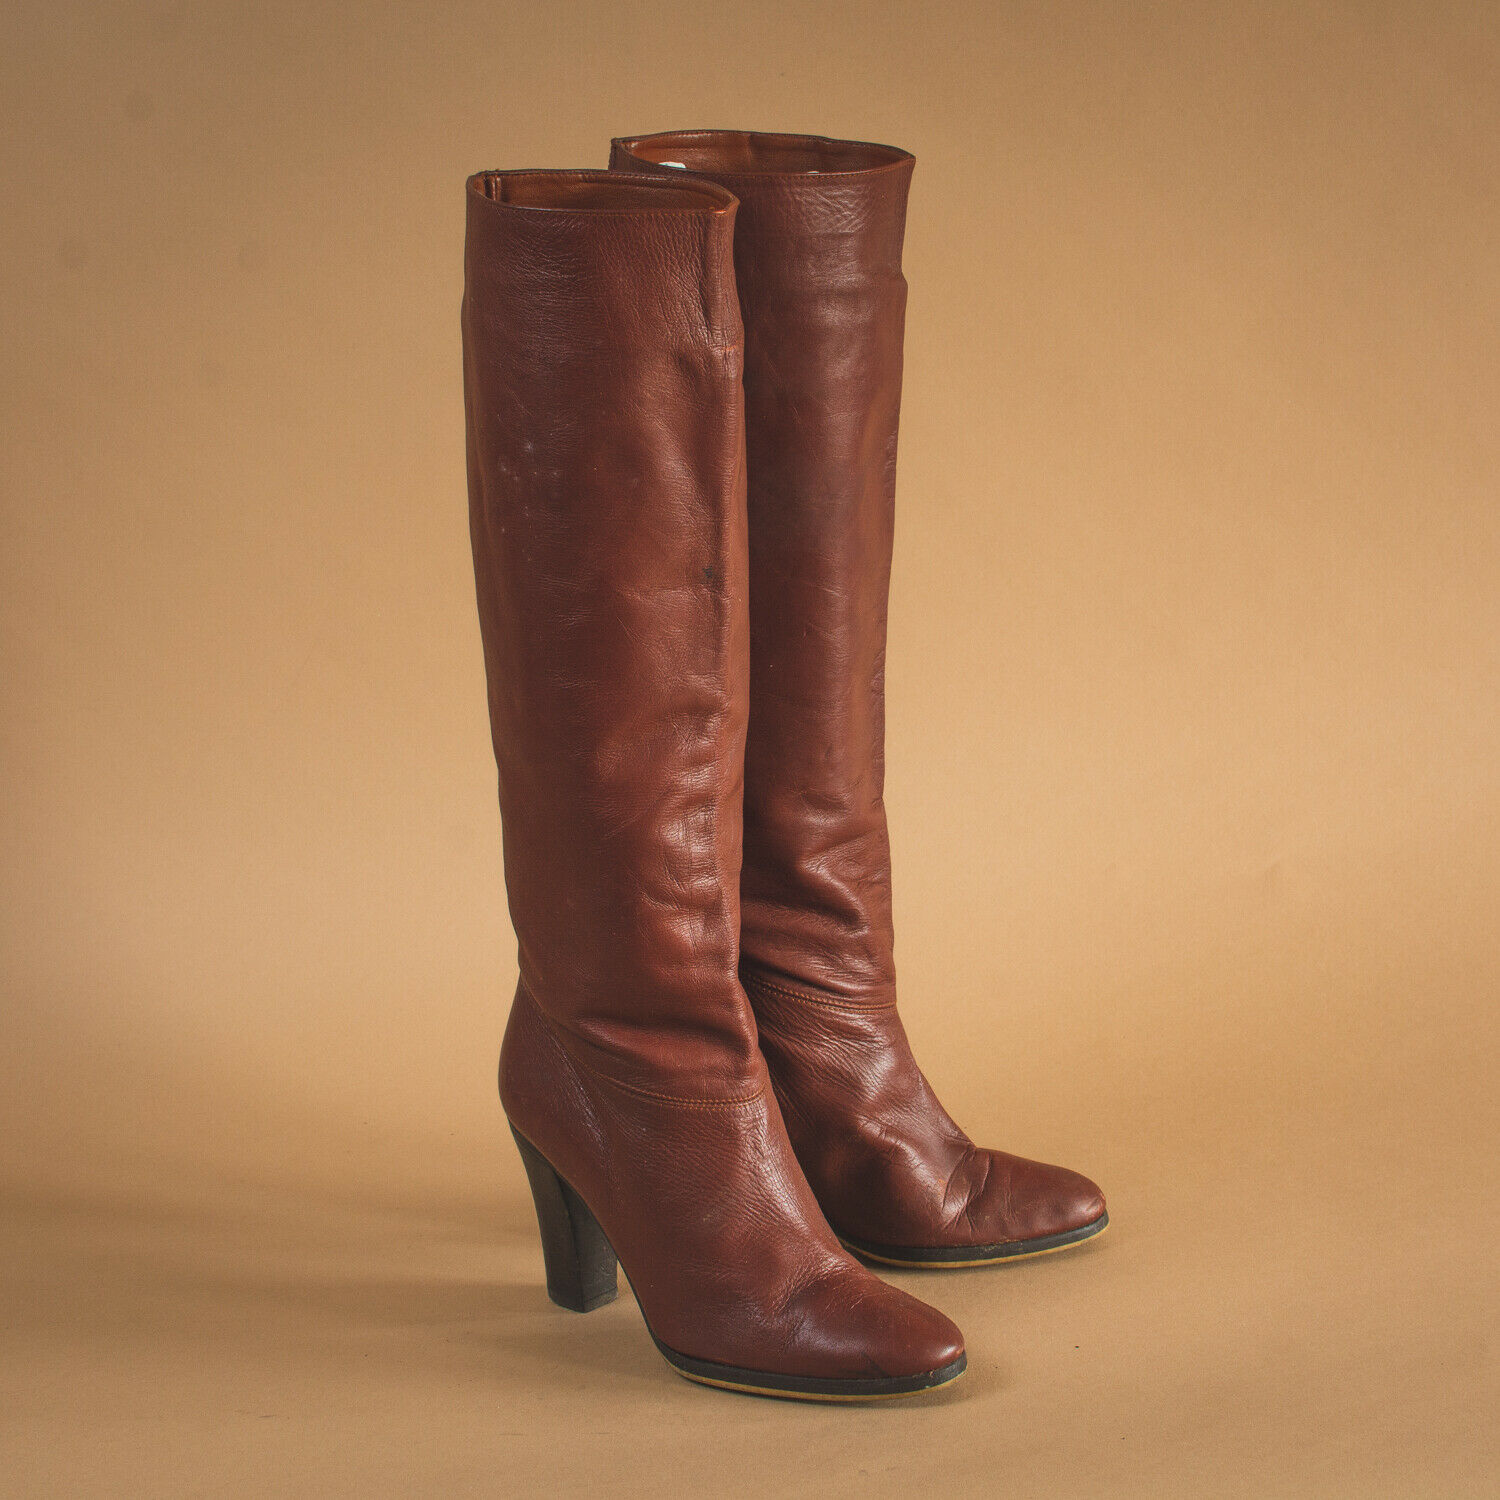 Vintage 80's 90's Women's Brown Leather Heeled Knee Boots US 5.5